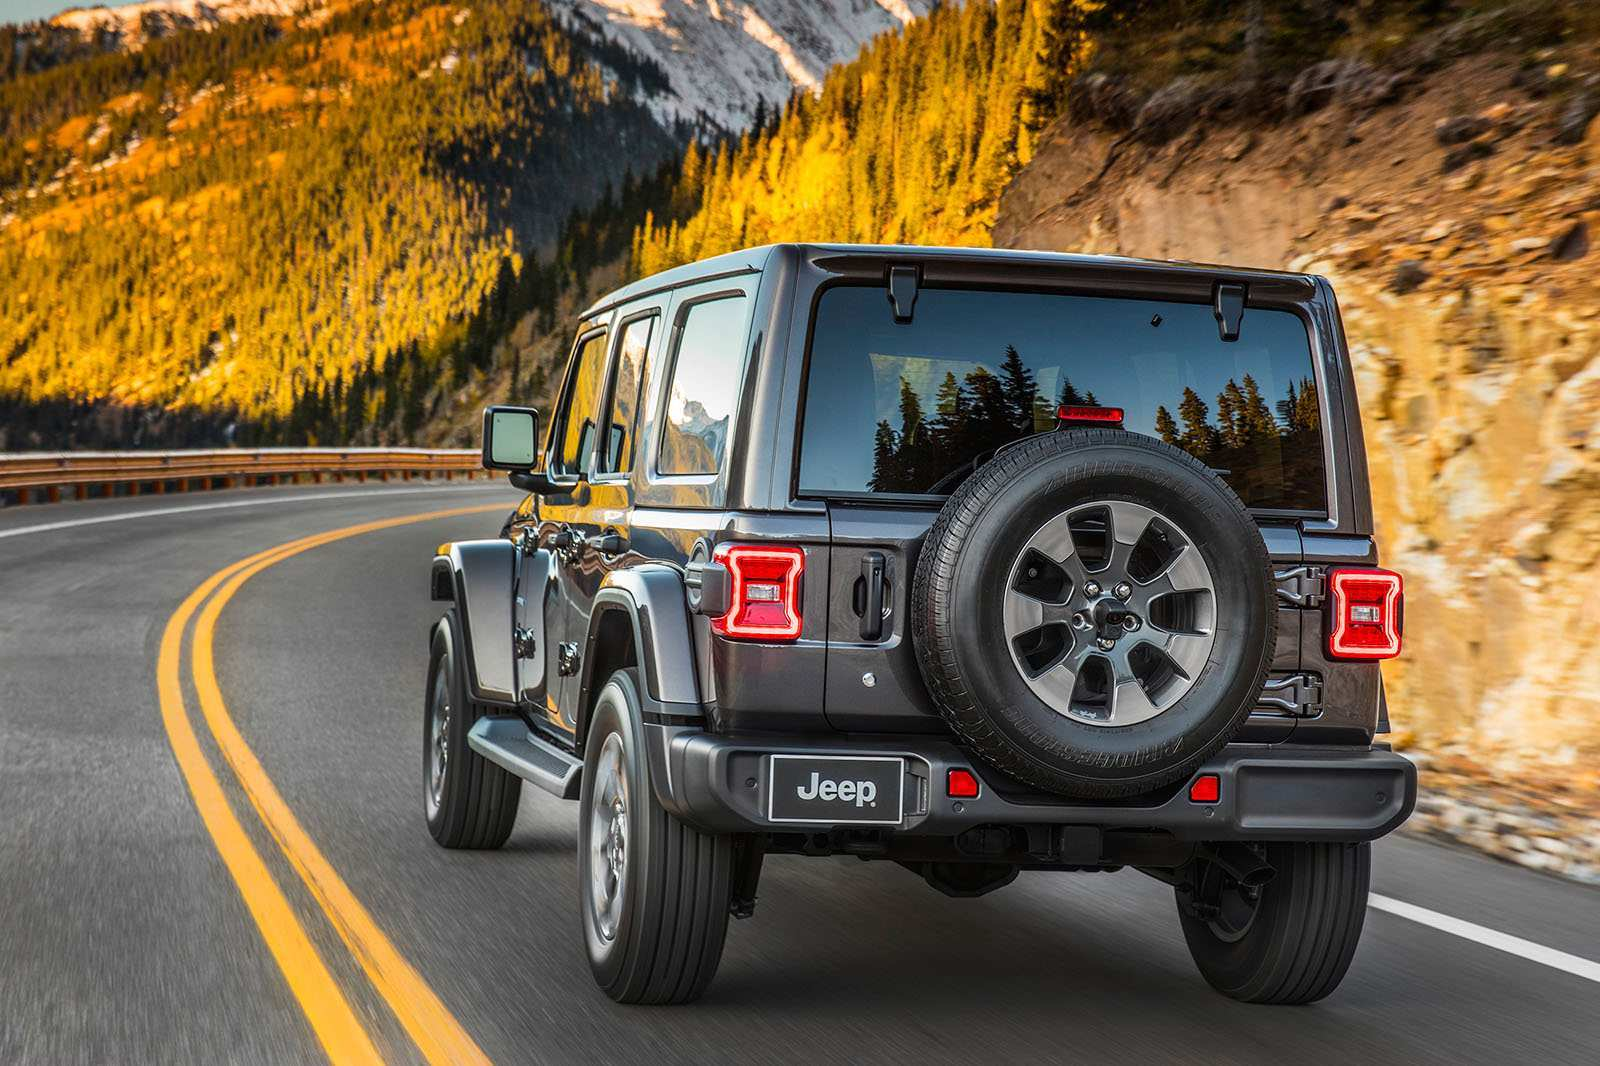 90 Best Review 2019 Jeep Wrangler Engine Options Release with 2019 Jeep Wrangler Engine Options